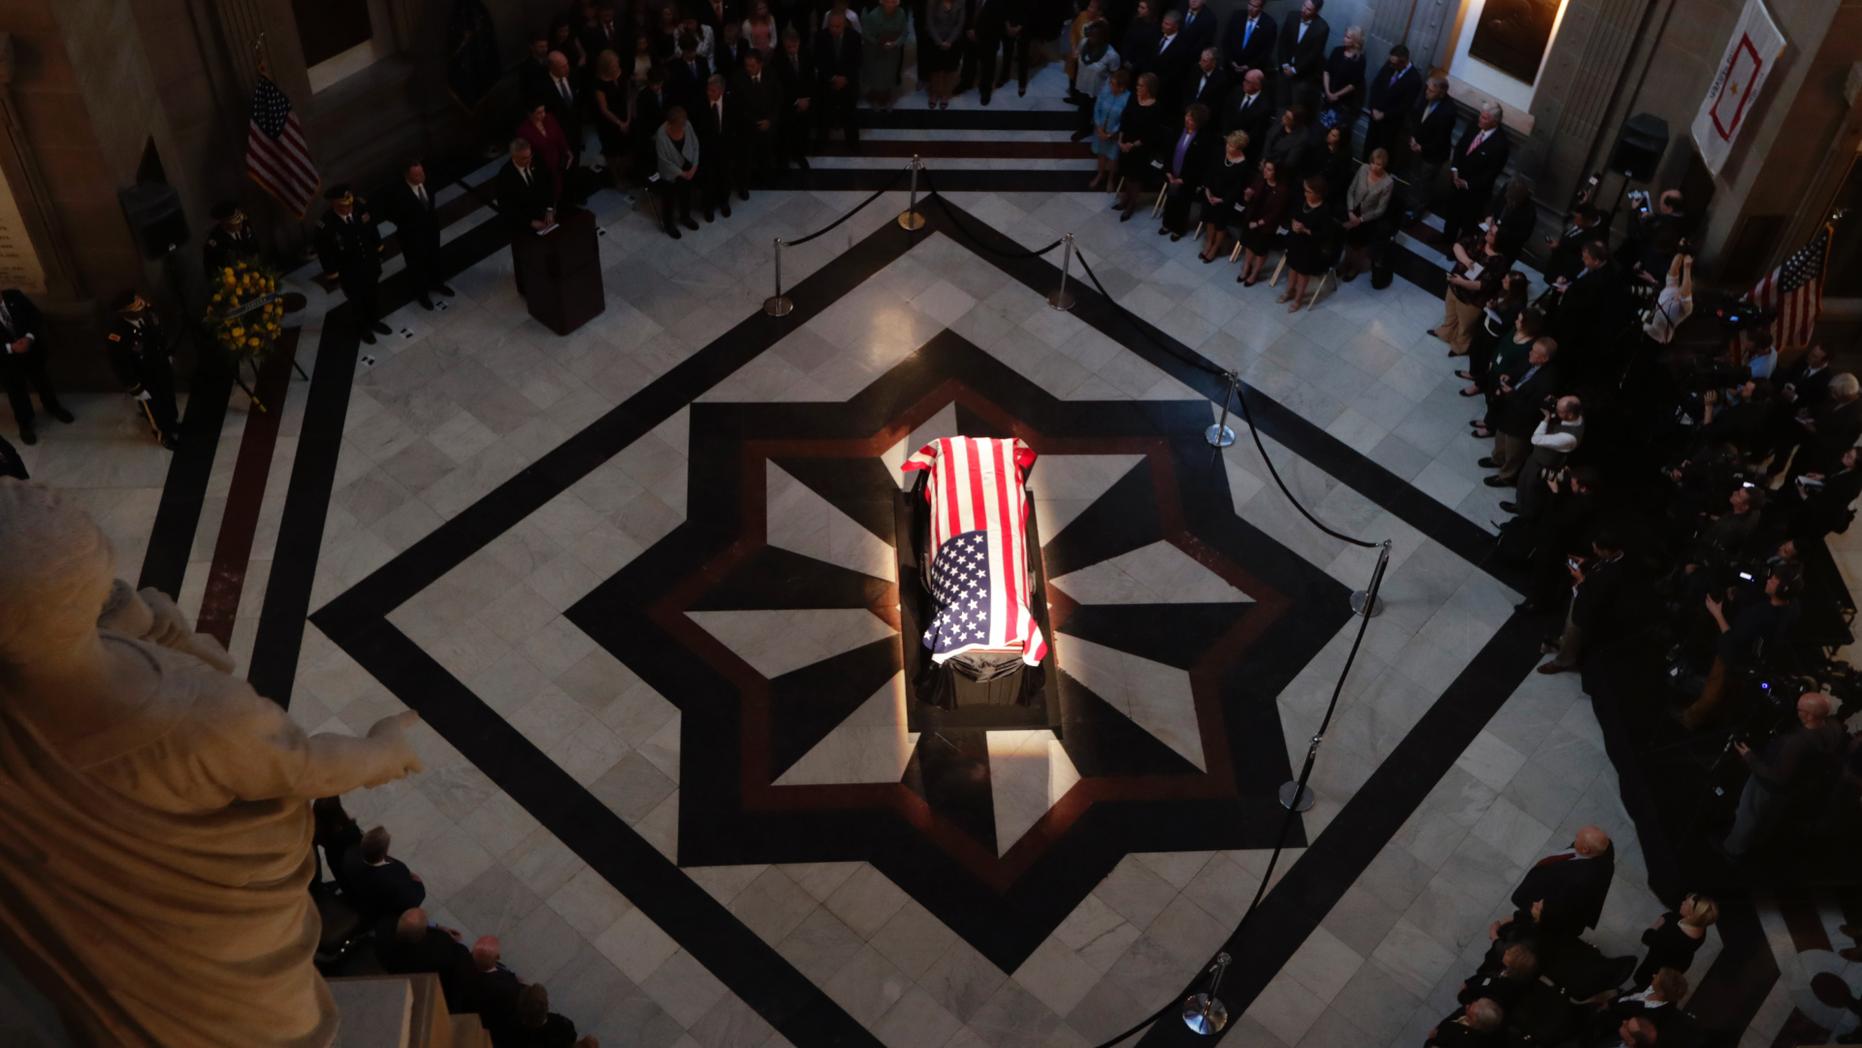 """The casket of Sen. Richard Lugar is illuminated in the Indiana Statehouse rotunda in Indianapolis, Tuesday, May 14, 2019. Lugar was a longtime Republican senator and former Indianapolis mayor who's been hailed as an """"American statesman"""" since he died April 28 at age 87. (AP Photo/Michael Conroy)"""